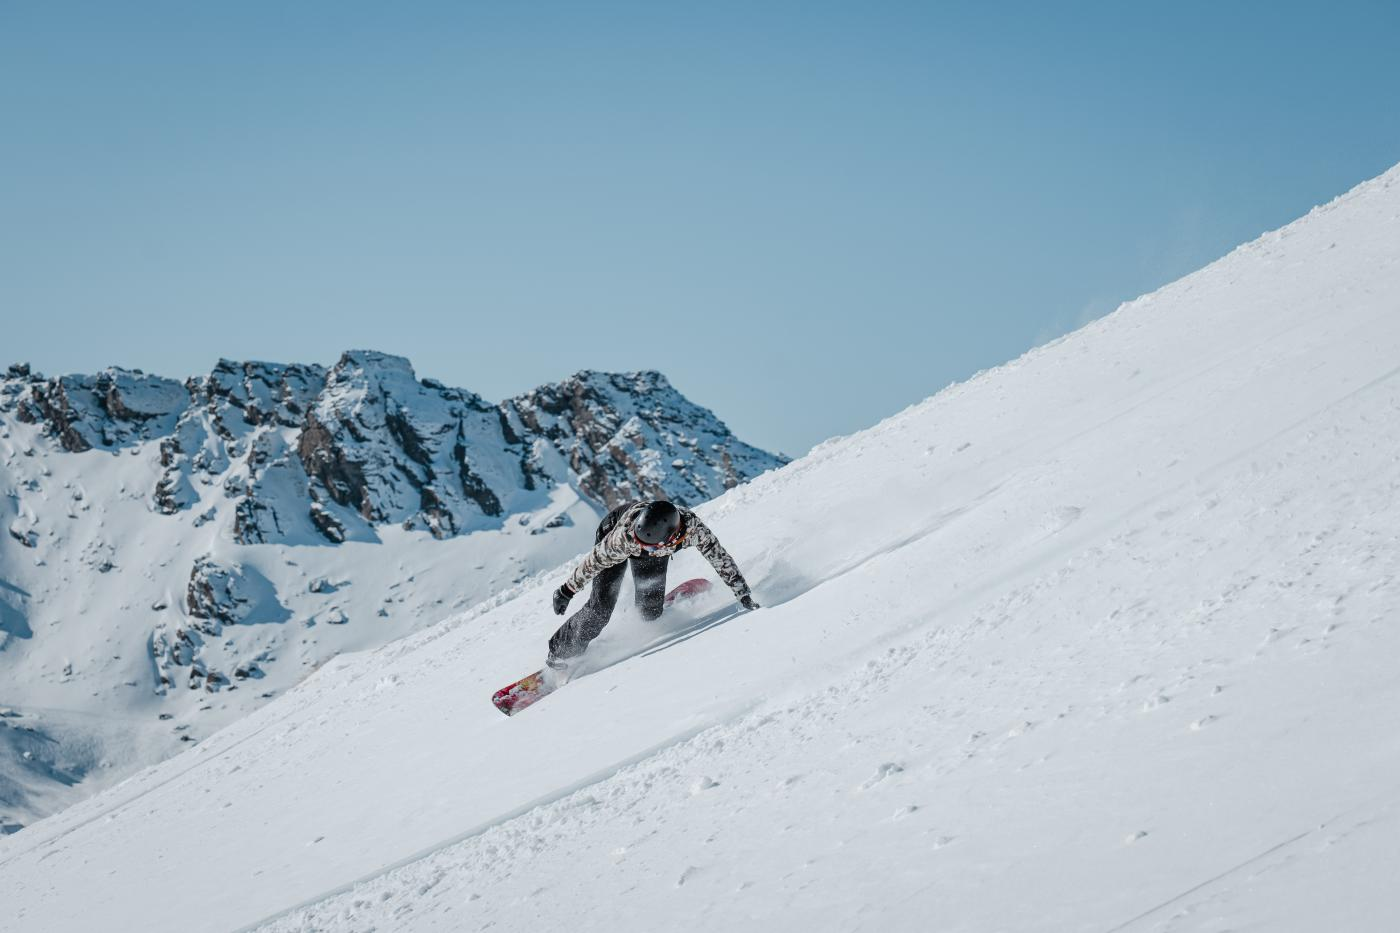 Spring snowboarder at The Remarkables